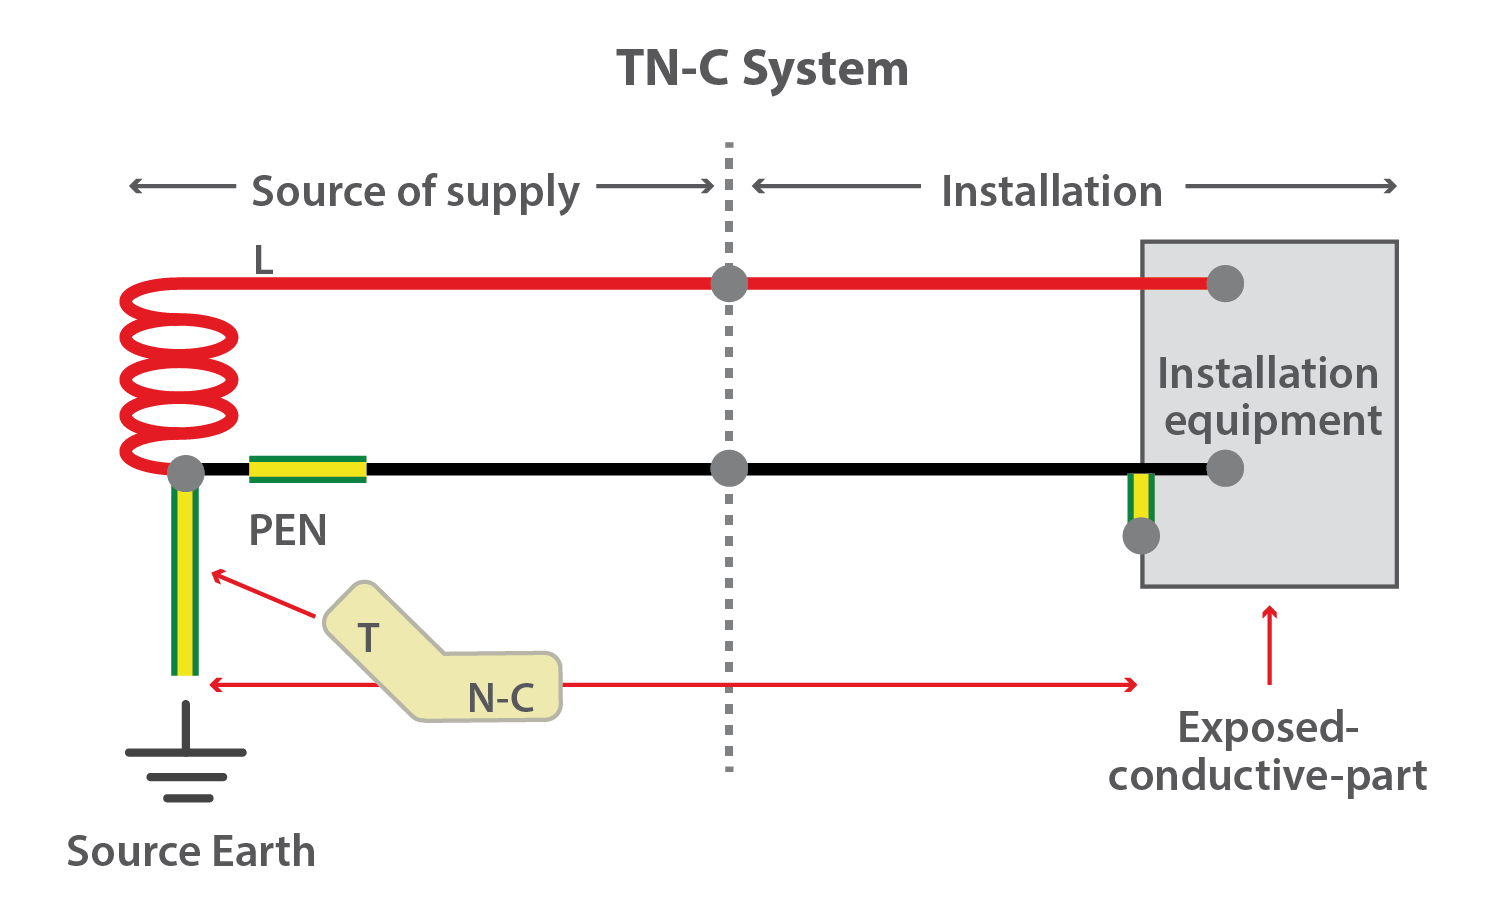 Getting Down To Earth Earthing Explained Gses Pv Wiring Diagram Nz Figure 2 Tn C System